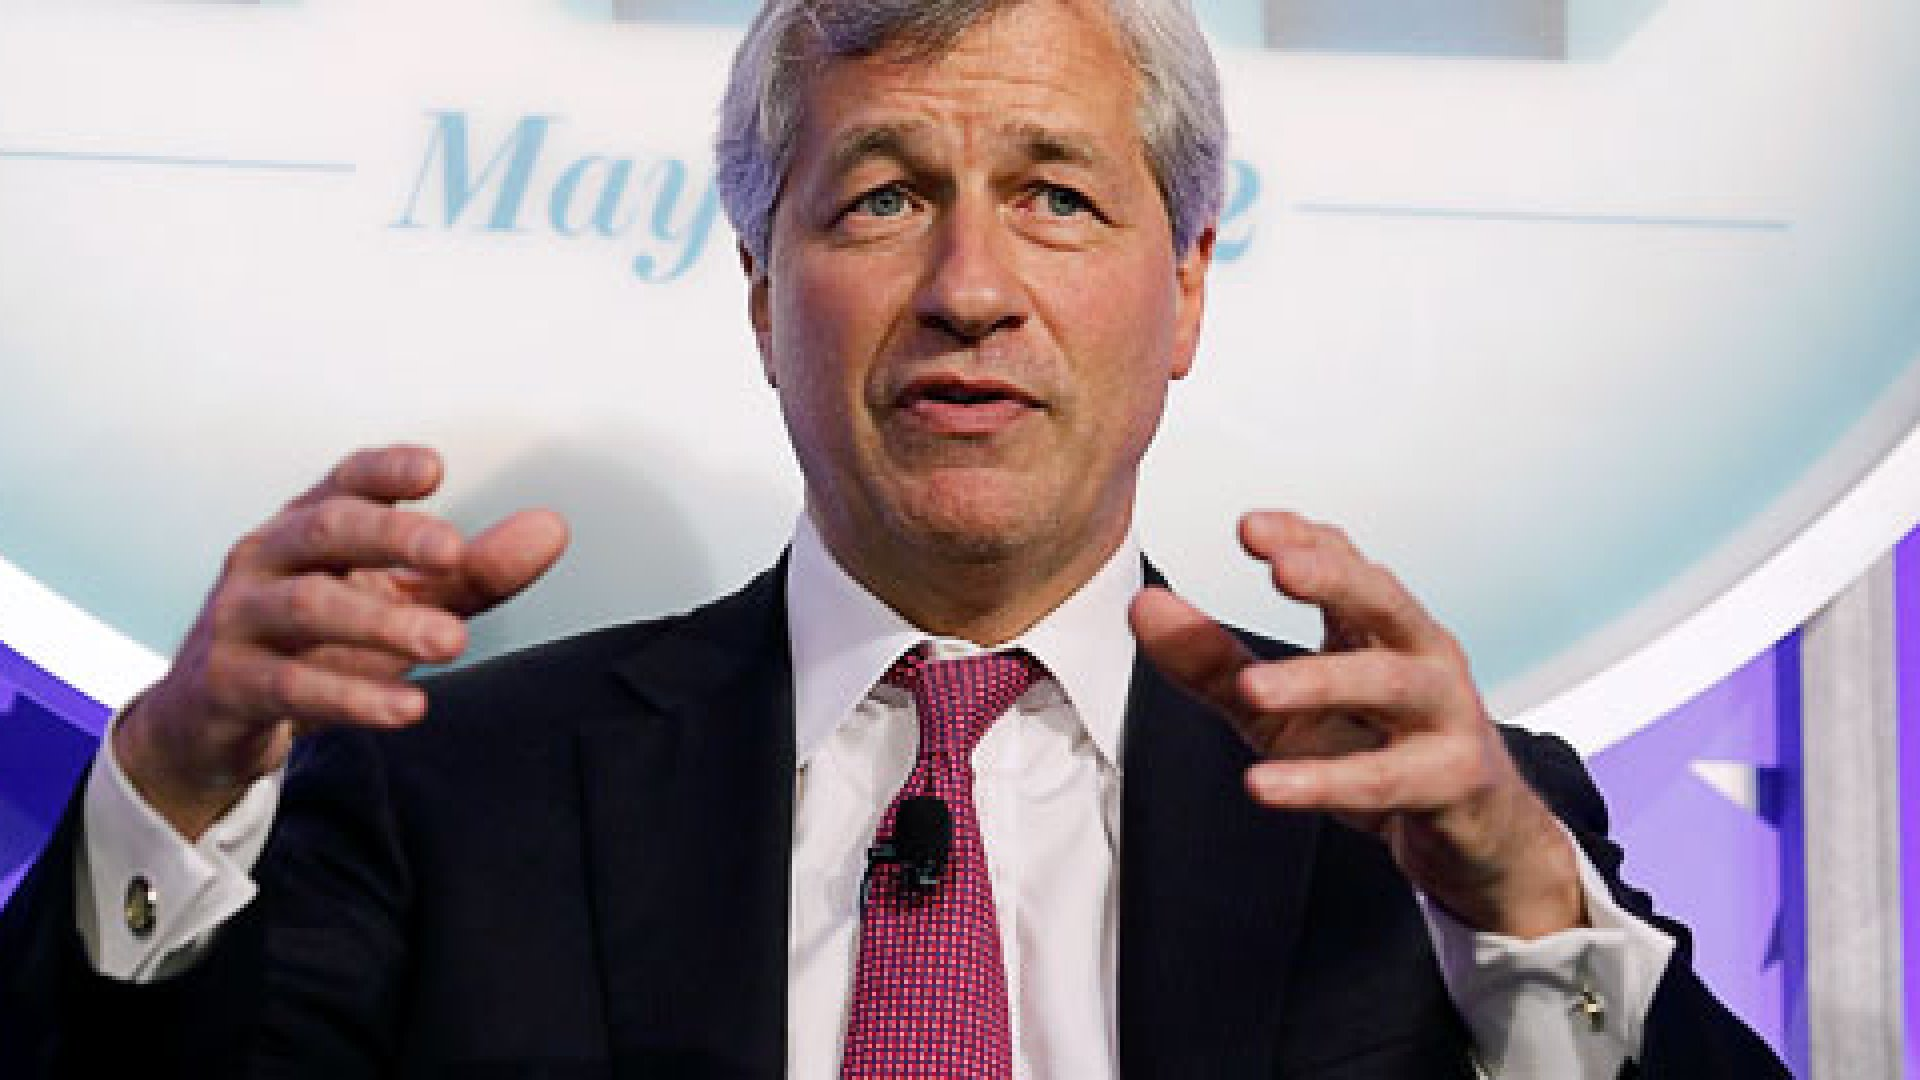 Jamie Dimon, Leadership, and the London Whale